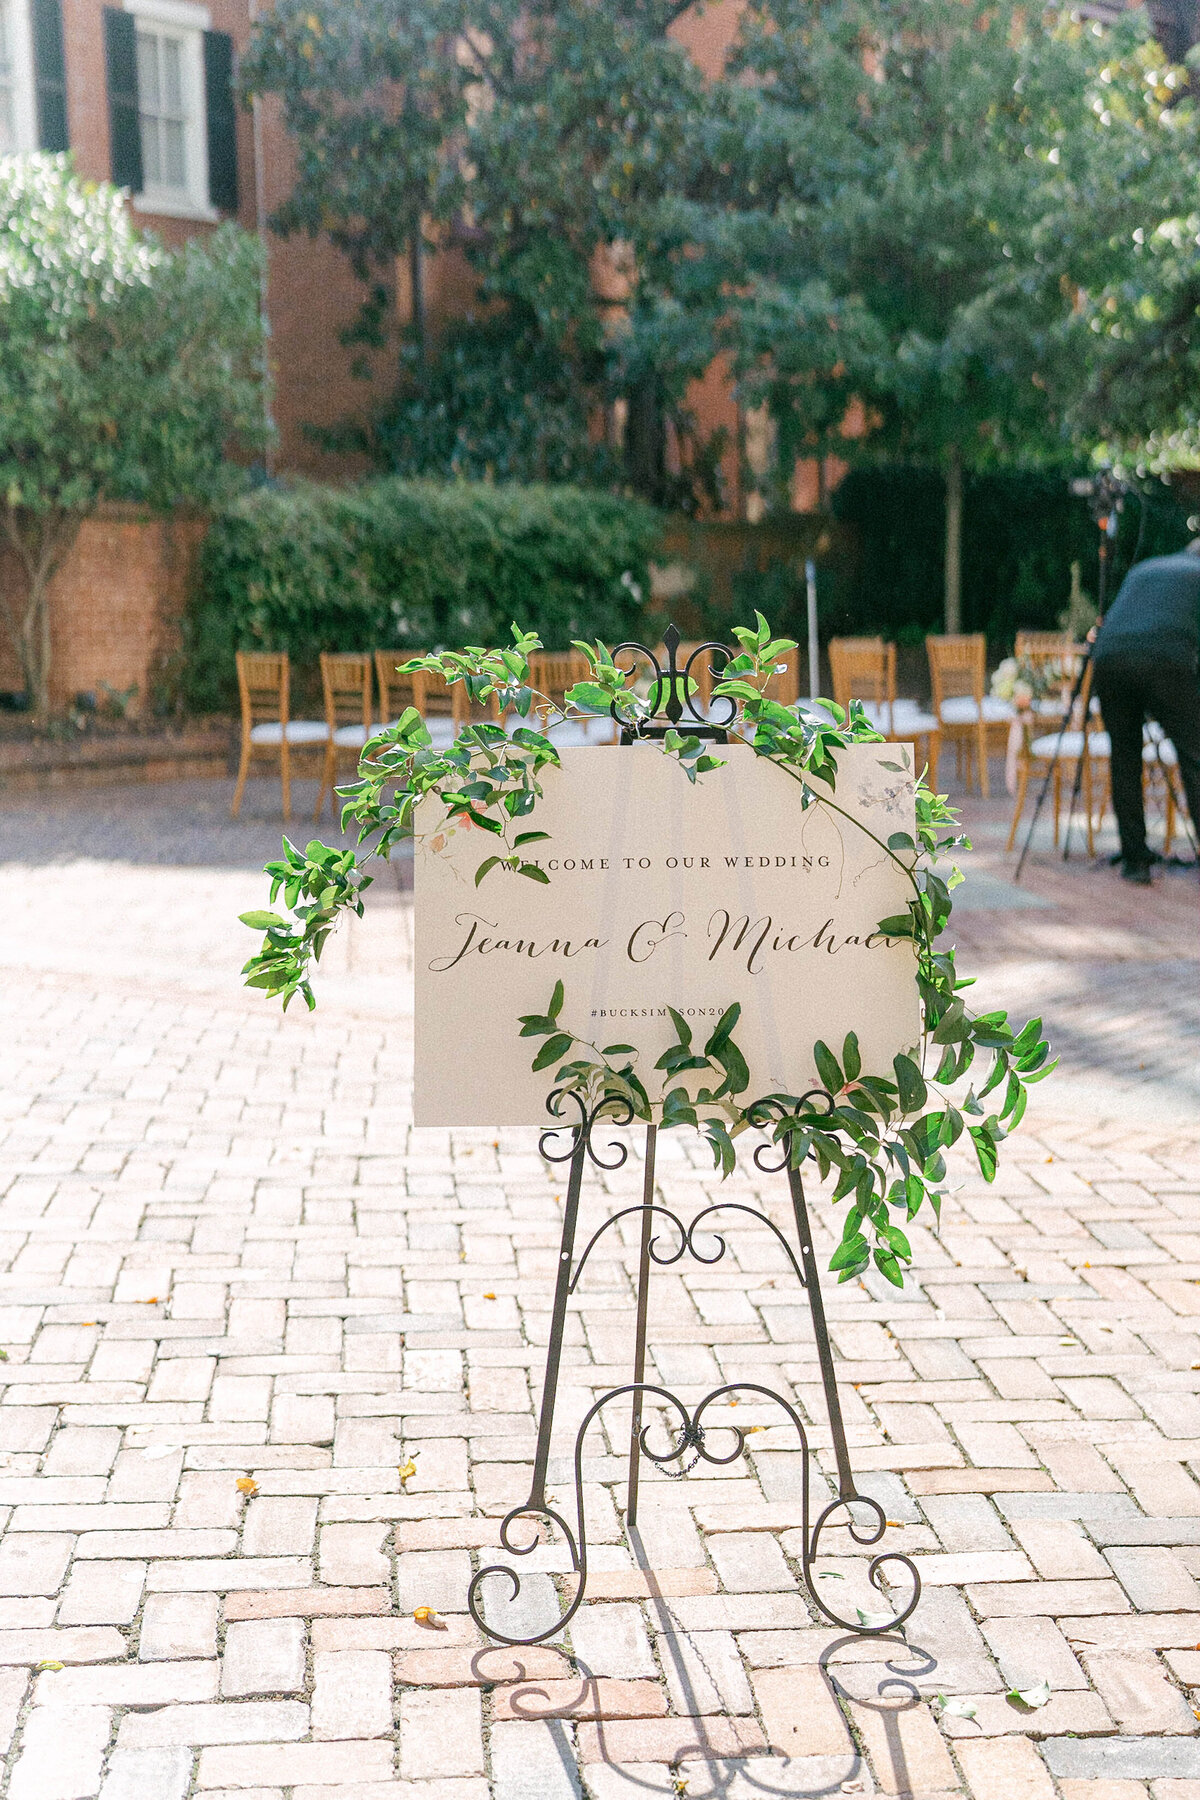 Jennifer Bosak Photography - DC Area Wedding Photography - DC, Virginia, Maryland - Jeanna + Michael - Decatur House Wedding - 35